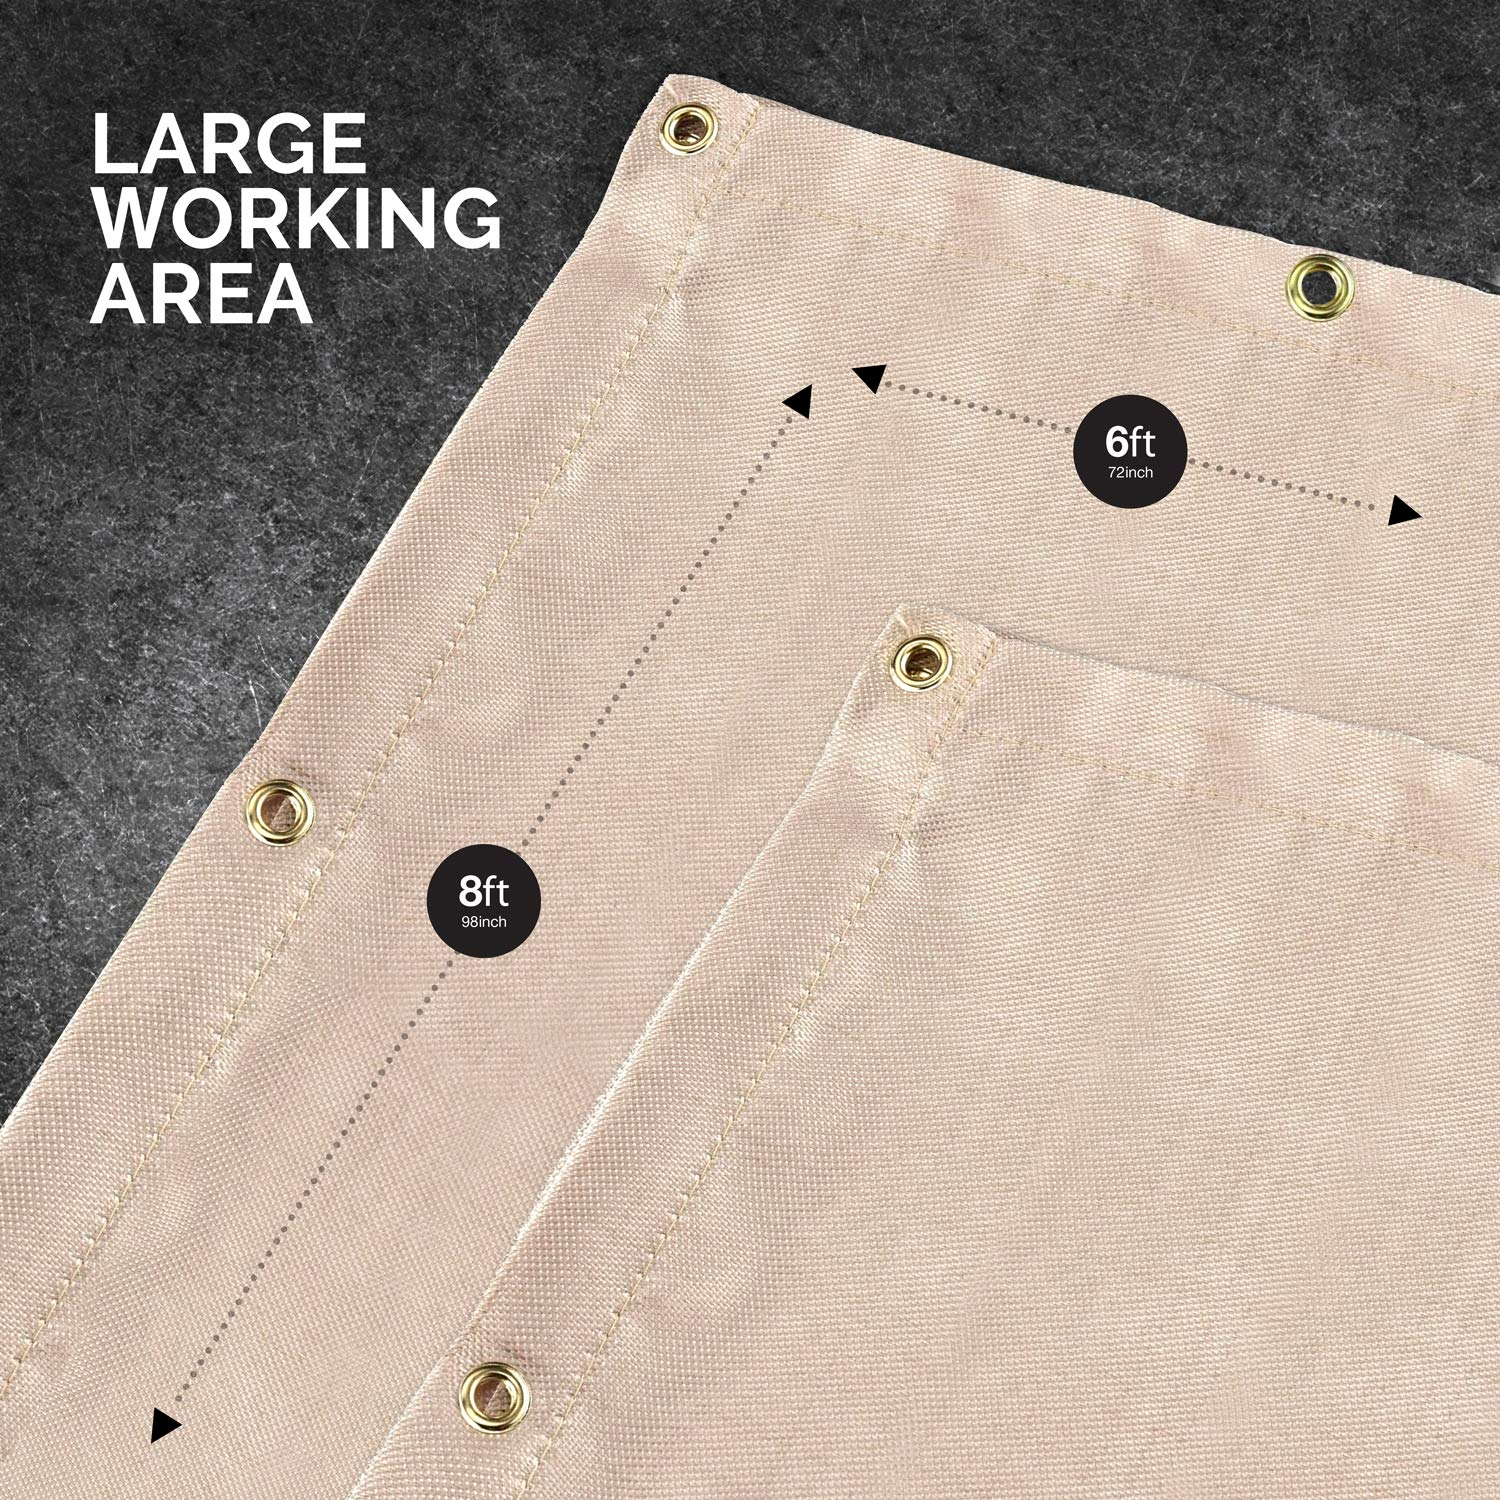 Neiko 10909A Fiberglass Welding Blanket and Cover, 6' x 8'   Brass Grommets for Easy Hanging and Protection by Neiko (Image #6)